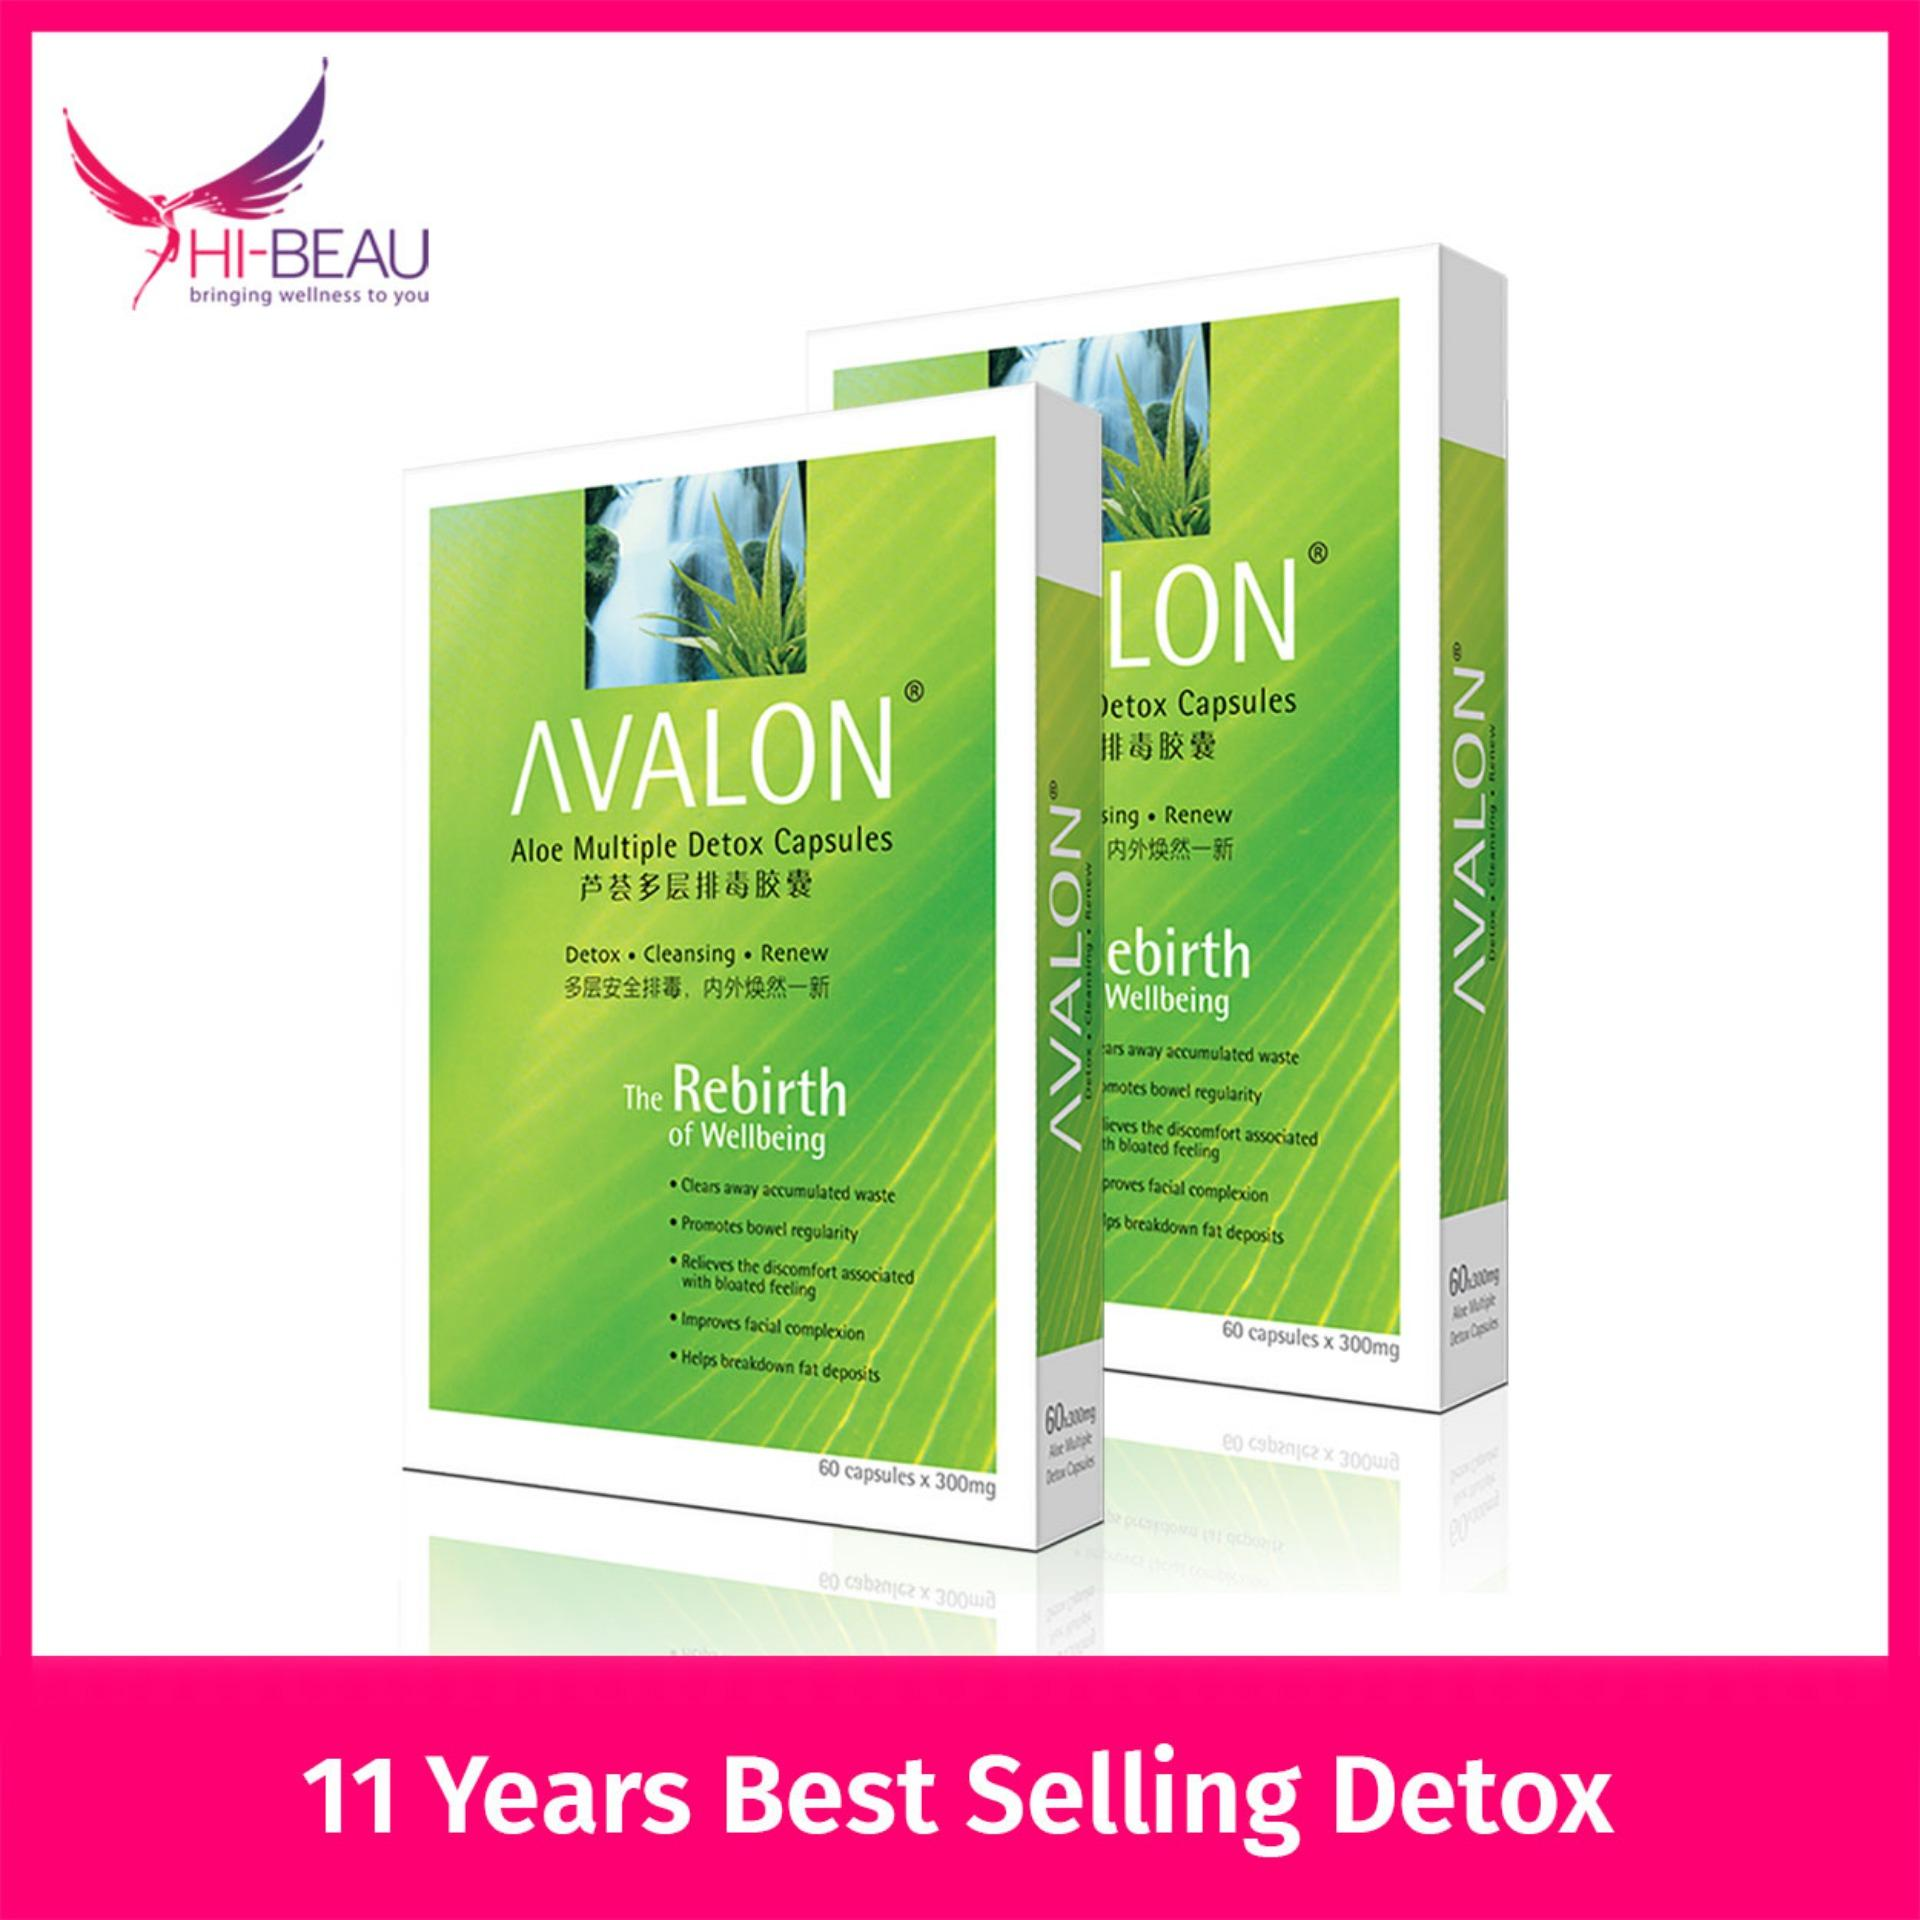 Avalon Aloe Multiple Detox Capsules Twin Pack Lower Price